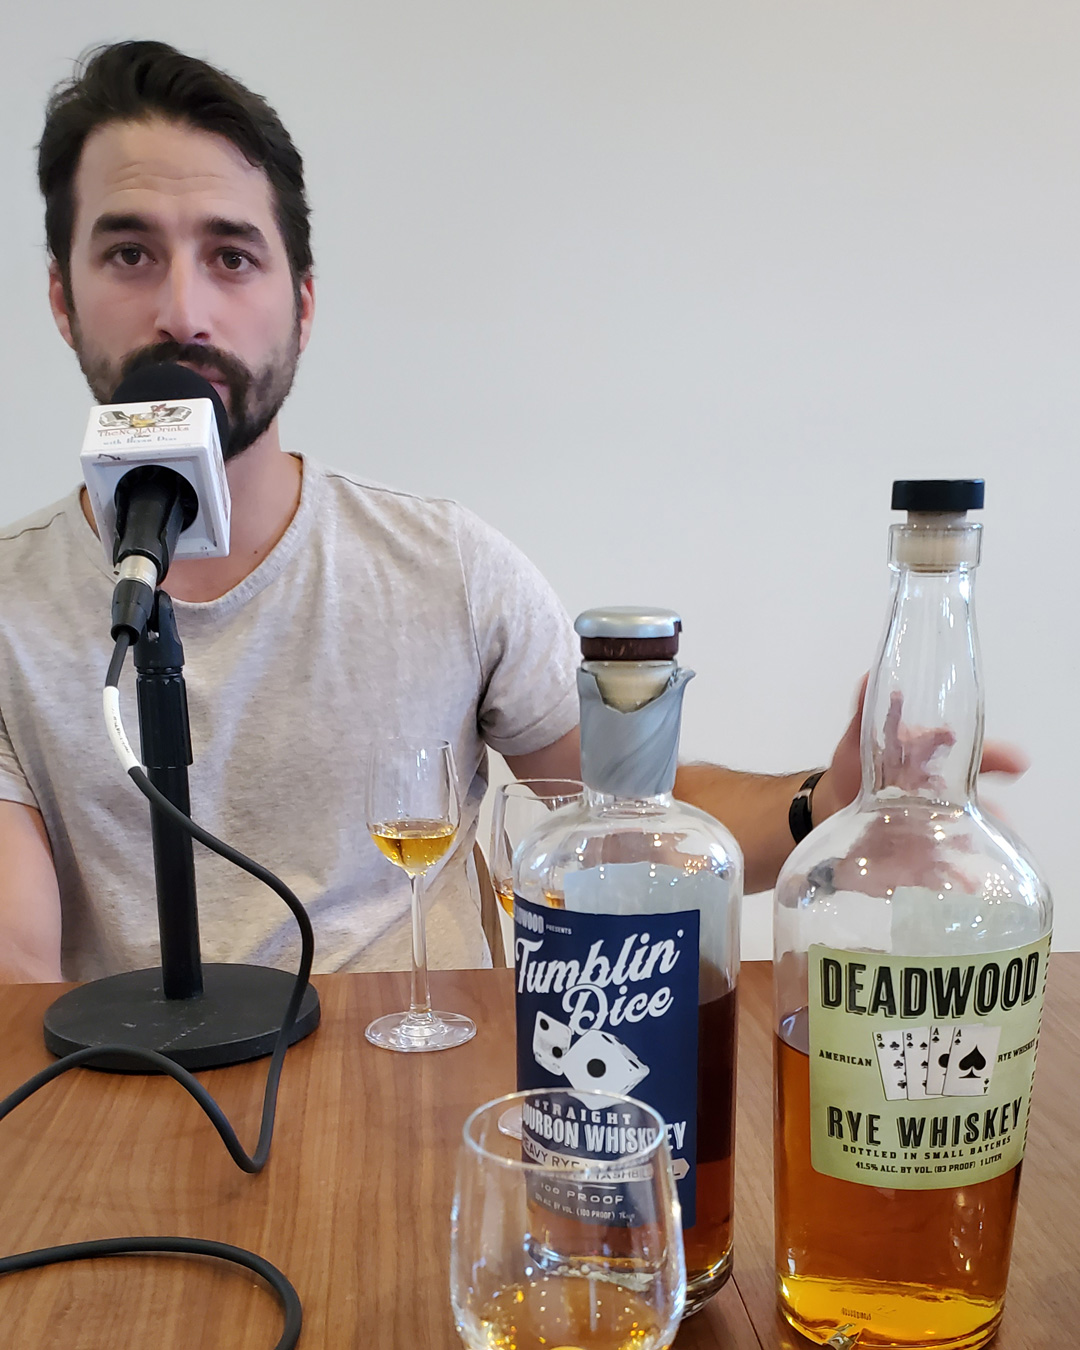 NOLADrinks Show – Liquid Luggage and Spirits Brokering with PM Brokerage – May20Ep3 – Phil Minissale of PM Brokerage along with two Deadwood whiskeys we tasted on Liquid Luggage #3.